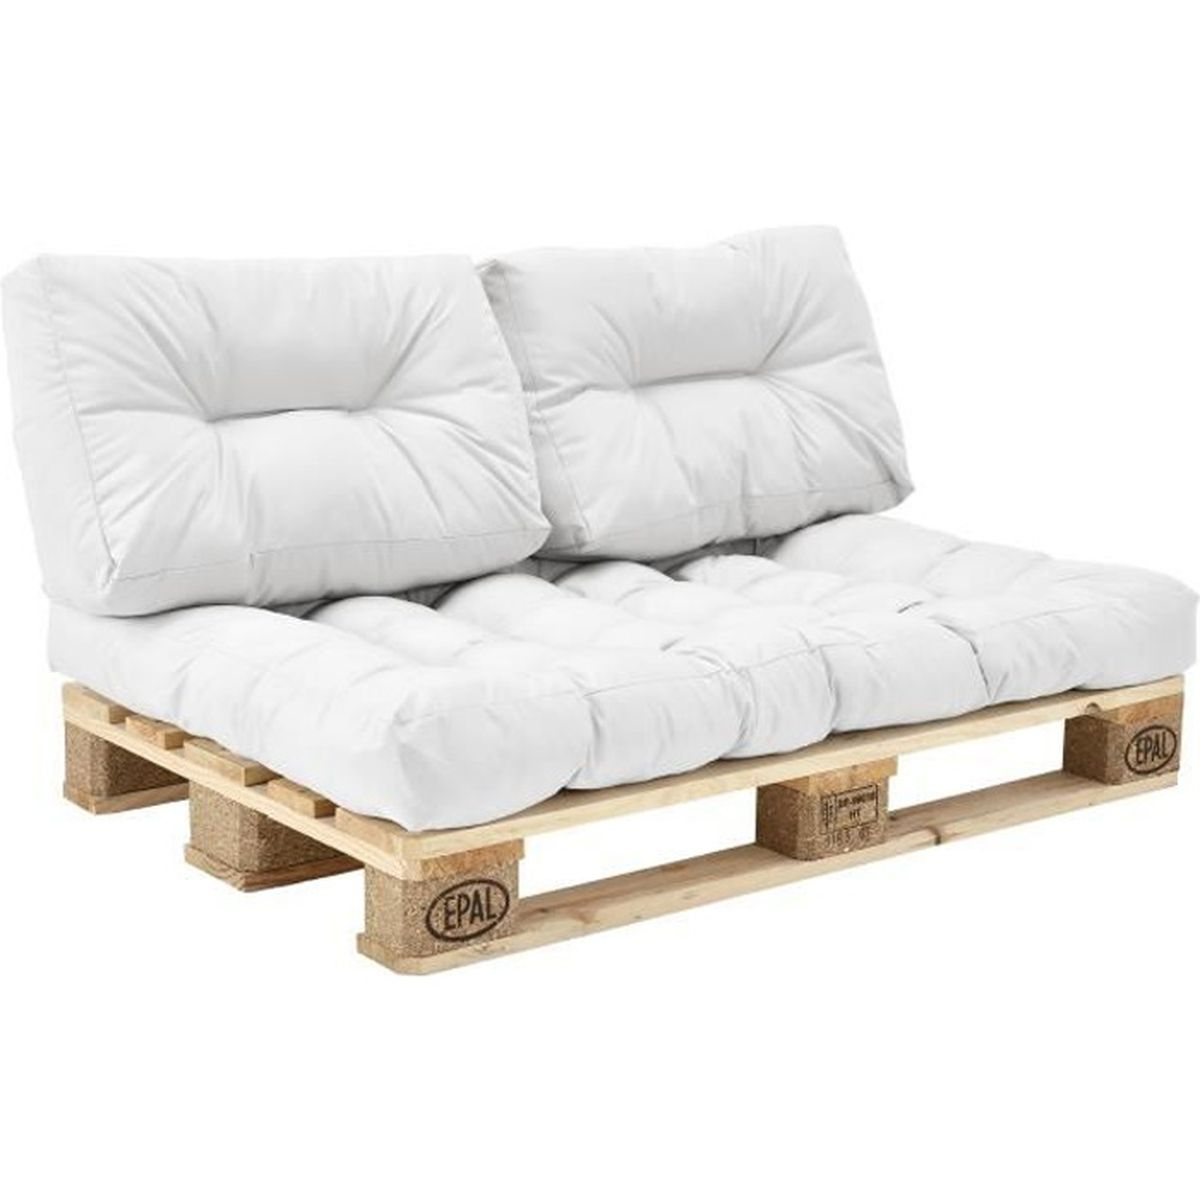 1x coussin de si ge pour canap d 39 euro palette blanc coussins de palettes in outdoor rembourrage. Black Bedroom Furniture Sets. Home Design Ideas